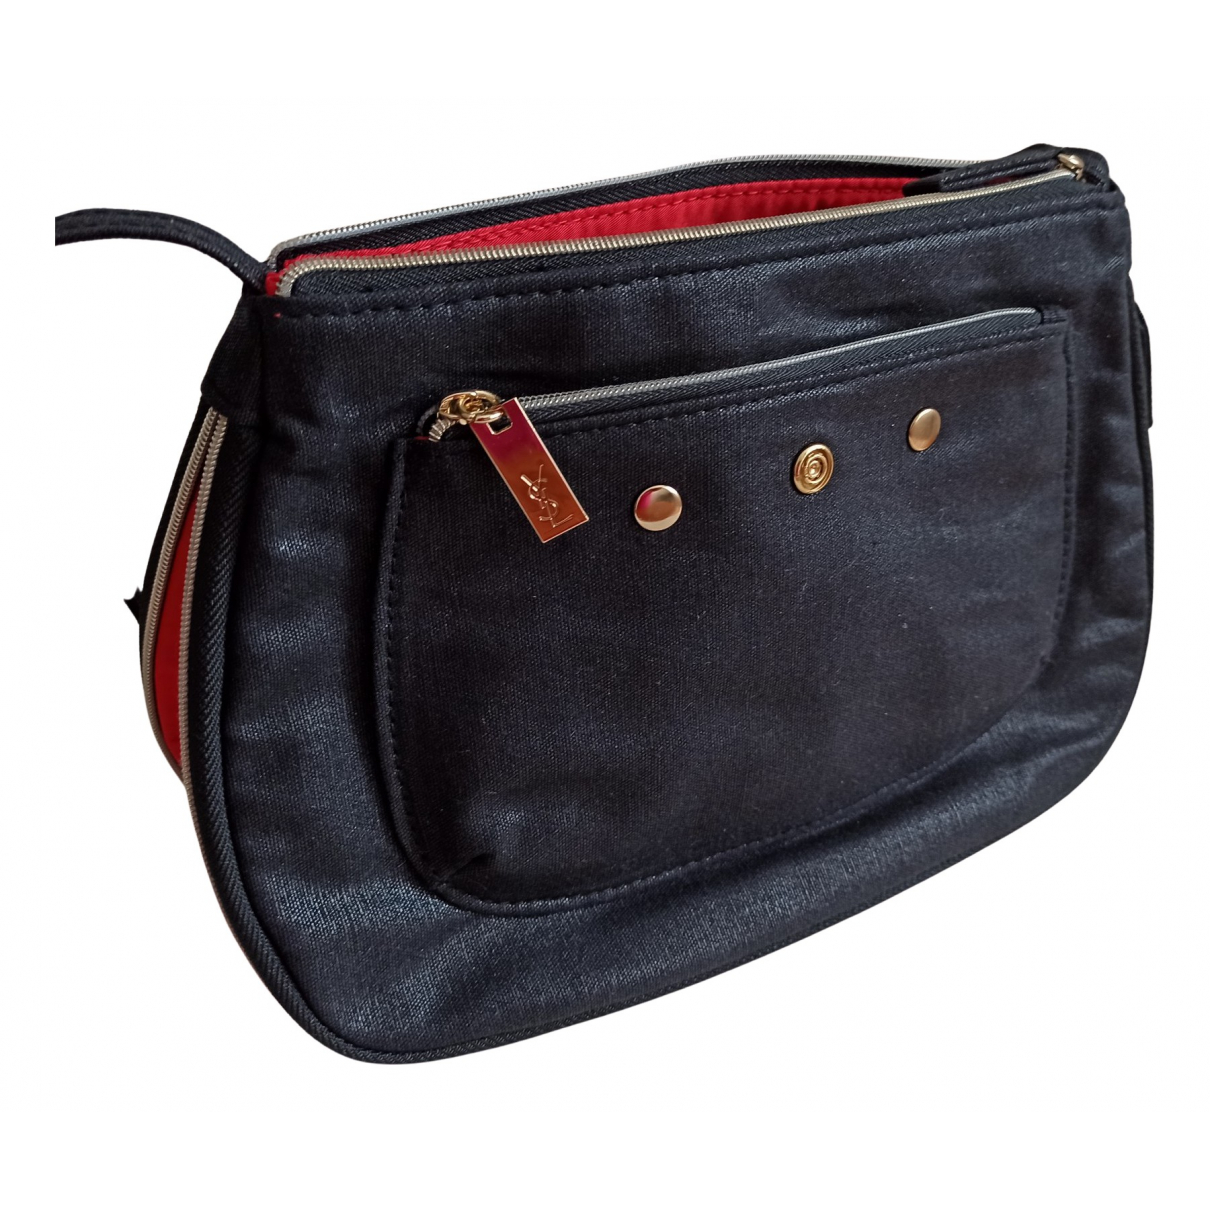 Yves Saint Laurent \N Clutch in  Schwarz Baumwolle